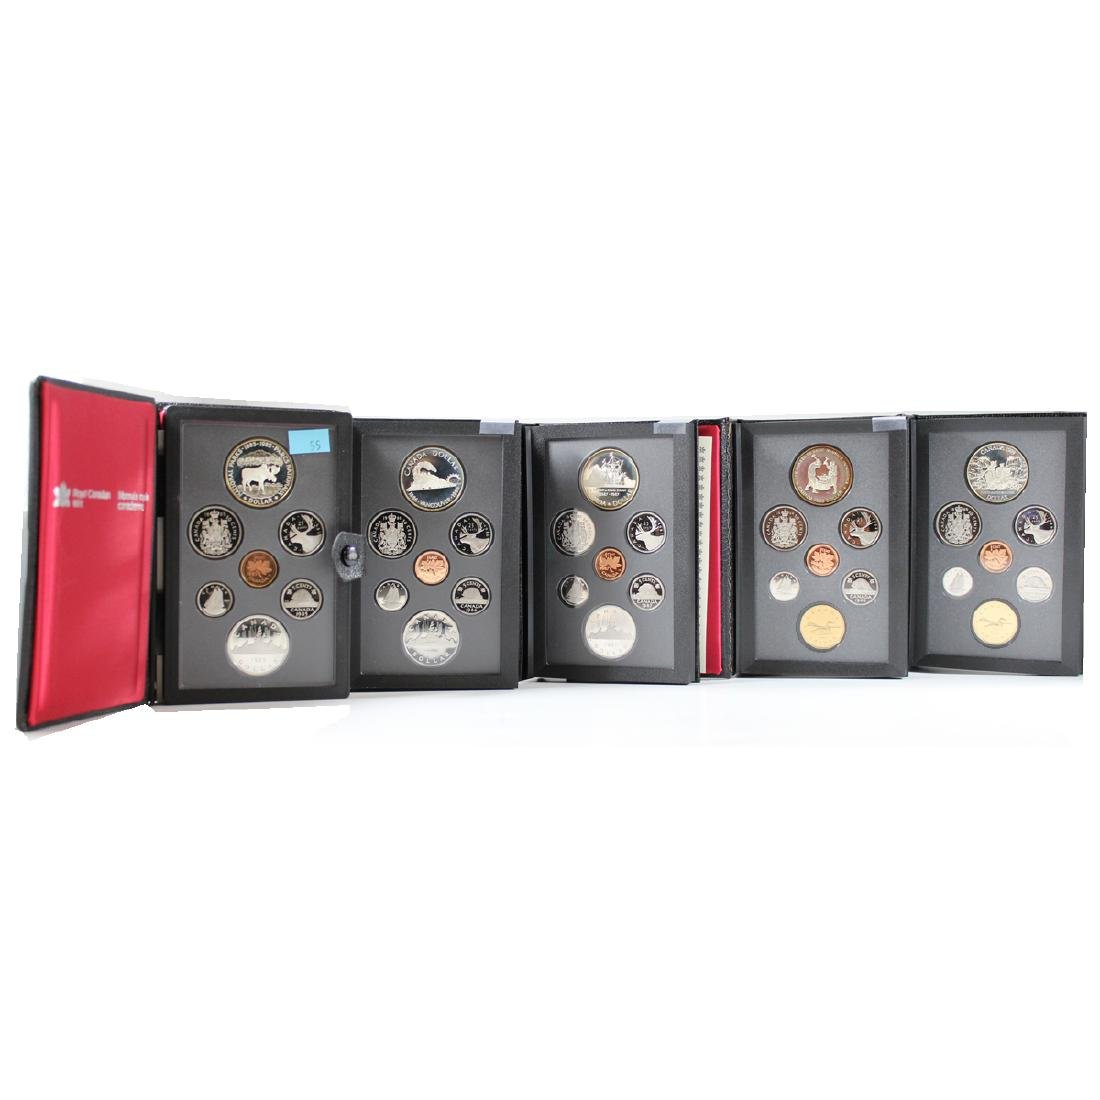 1985, 1986, 1987, 1988, 1989 Proof Double Dollar sets.